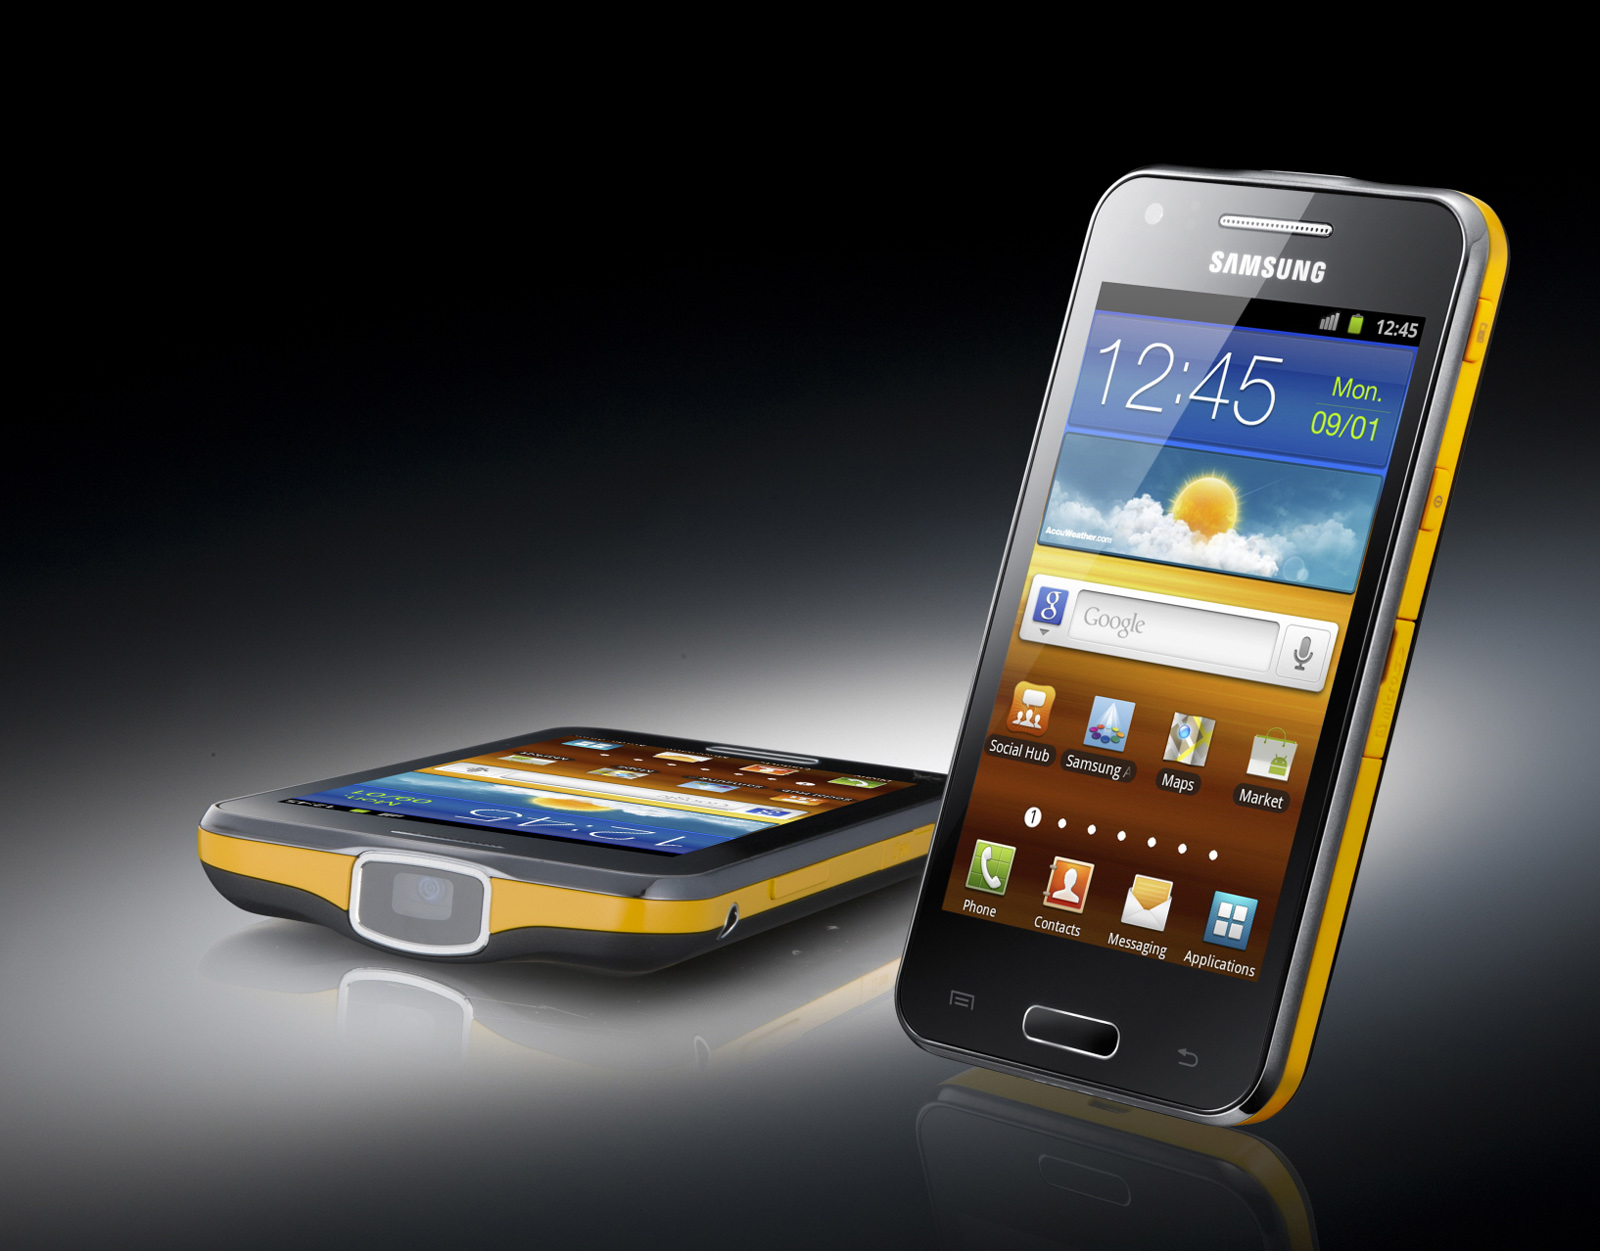 ... from Samsung, with the Galaxy Beam's full tech specs at the end